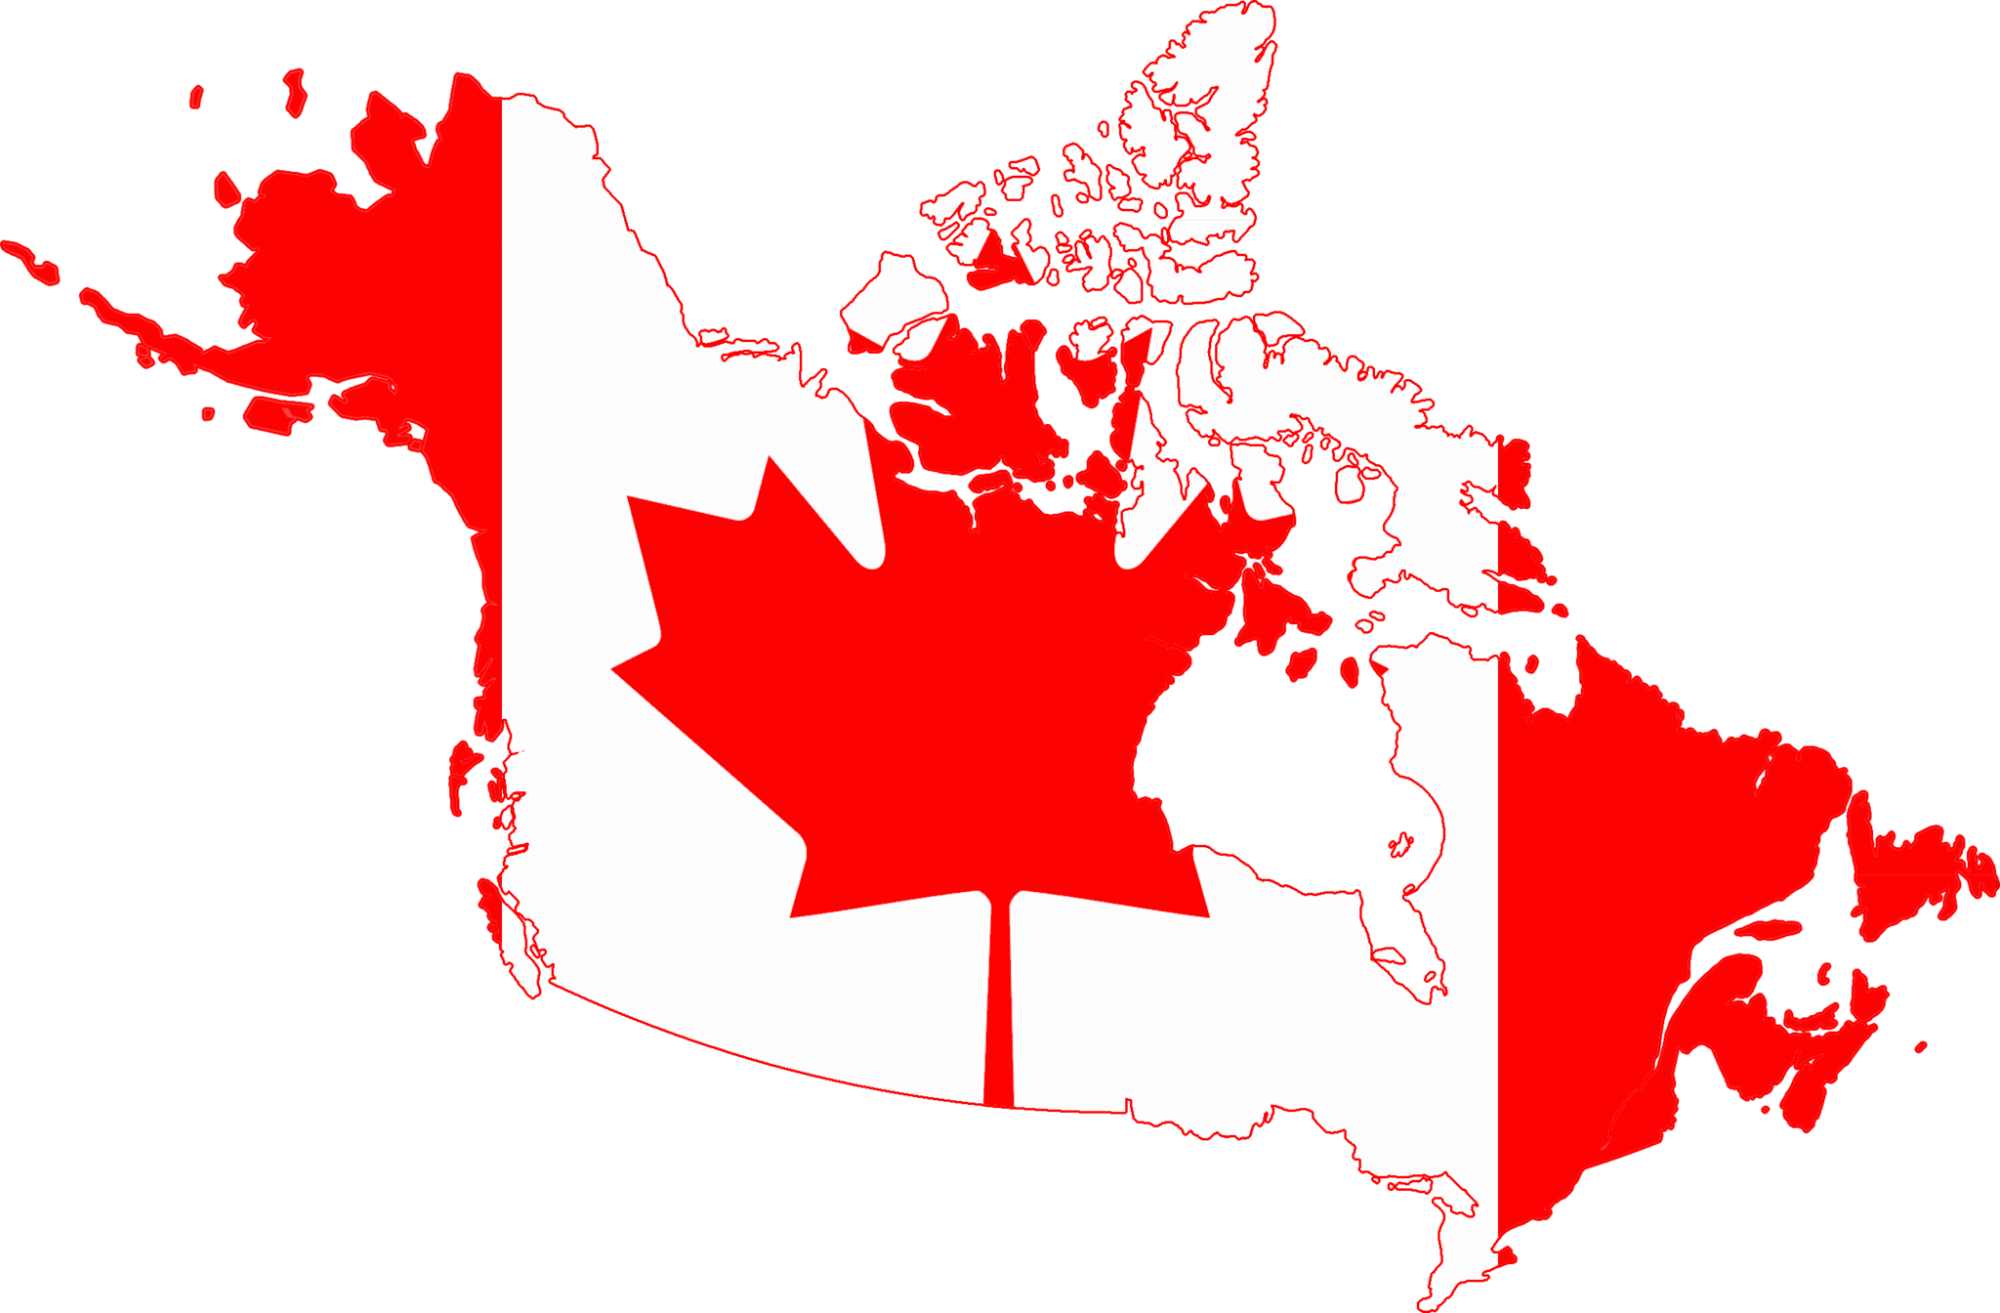 flag map of Canada by DrRandomFactor (Own work) [CC BY-SA 3.0 (https://creativecommons.org/licenses/by-sa/3.0)], via Wikimedia Commons